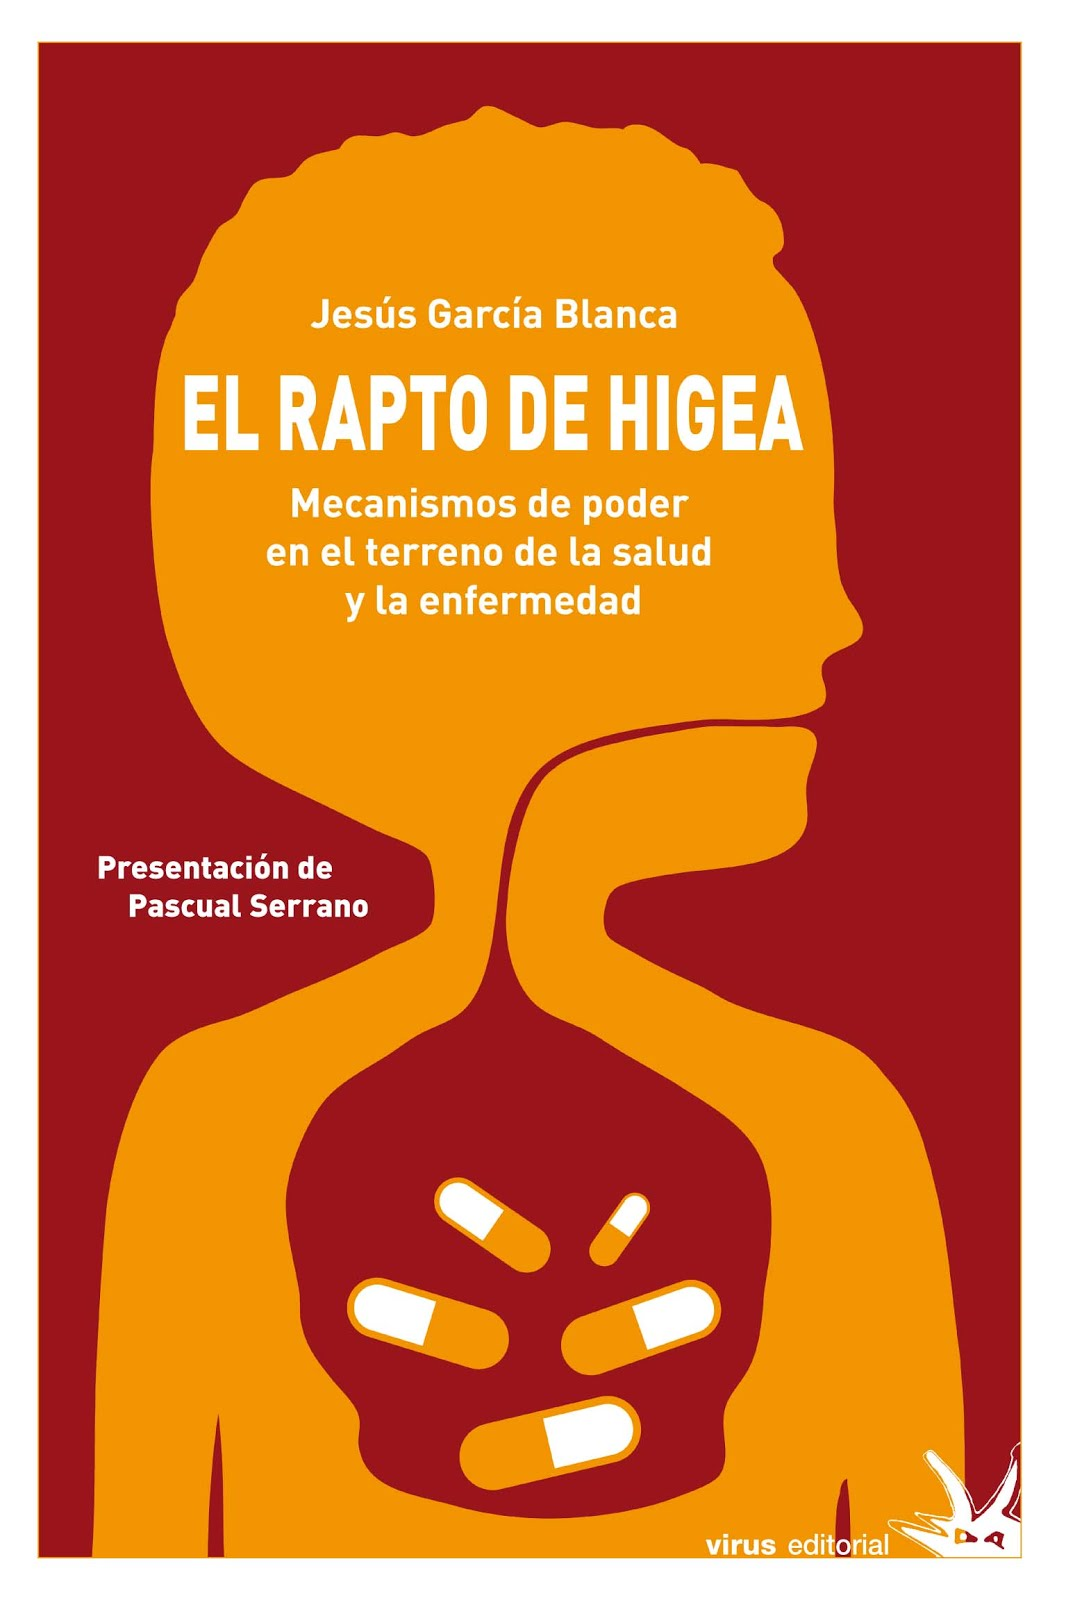 EL RAPTO DE HIGEA (Virus, 2009)